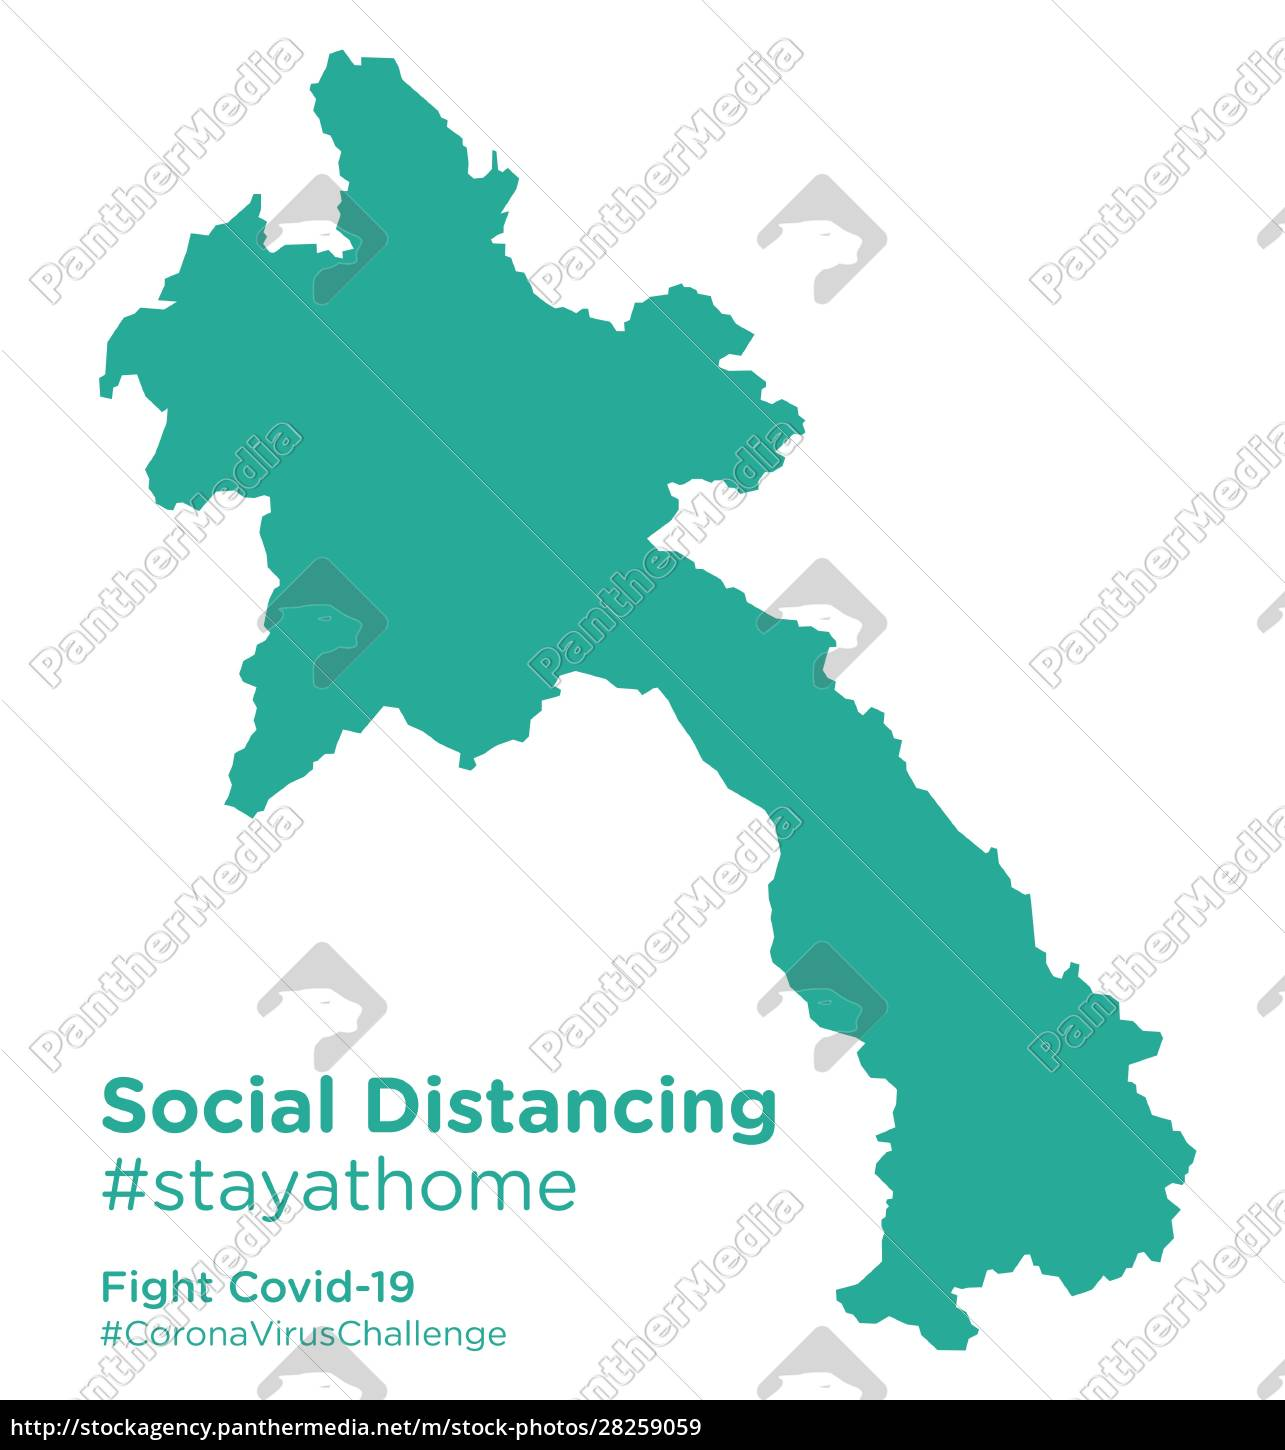 laos, map, with, social, distancing, stayathome - 28259059